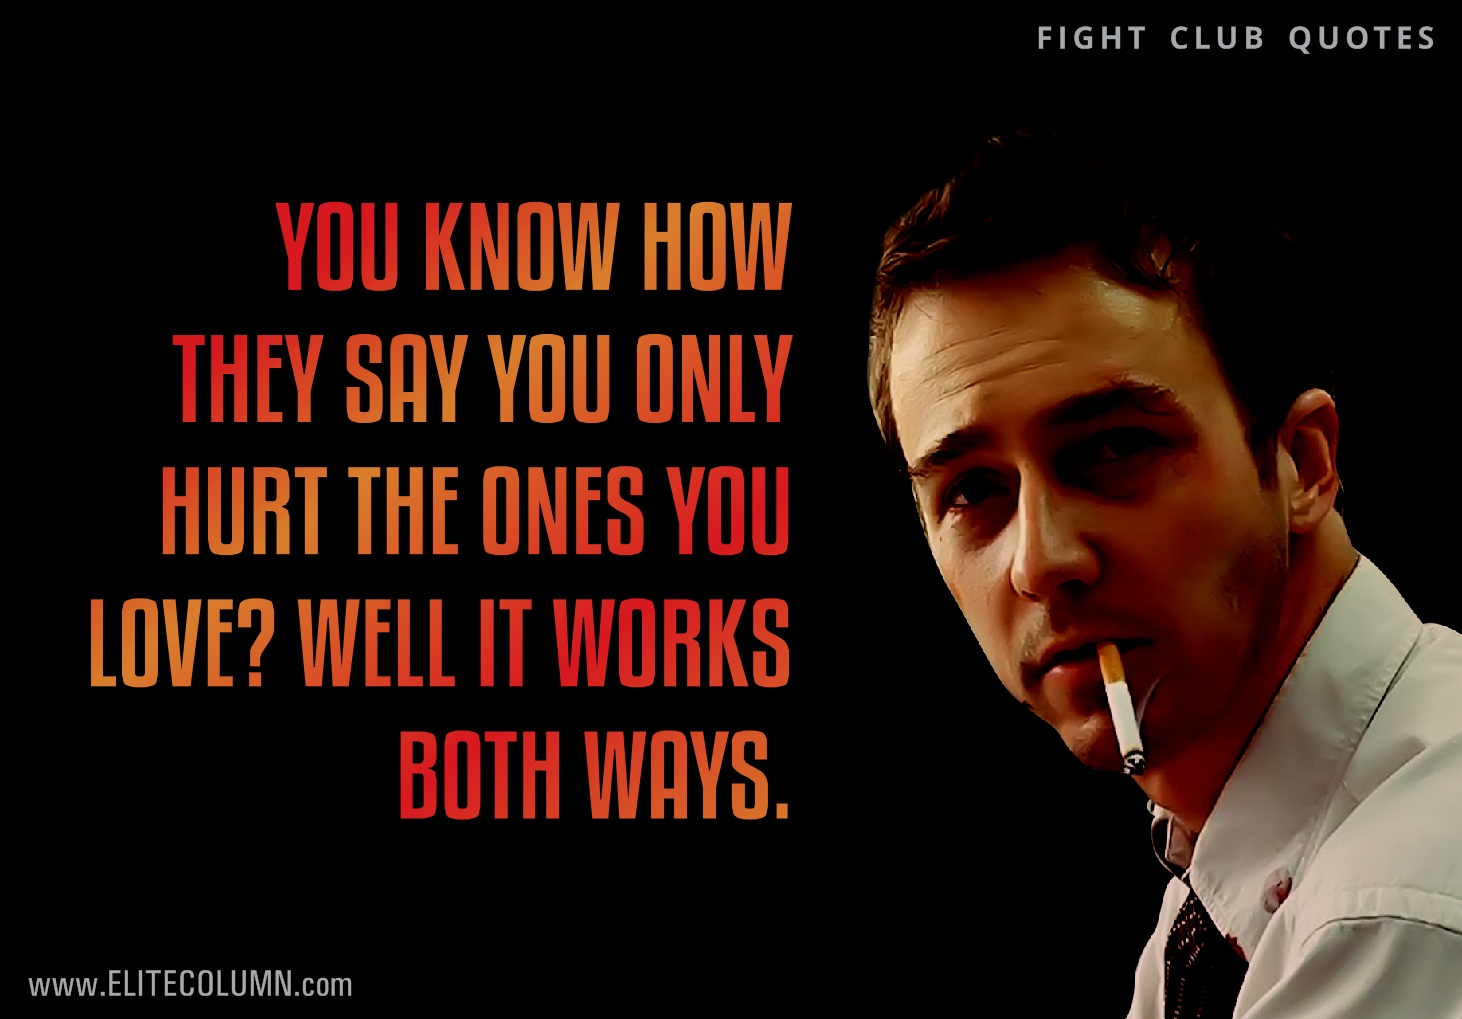 Fight Club Quotes (6)